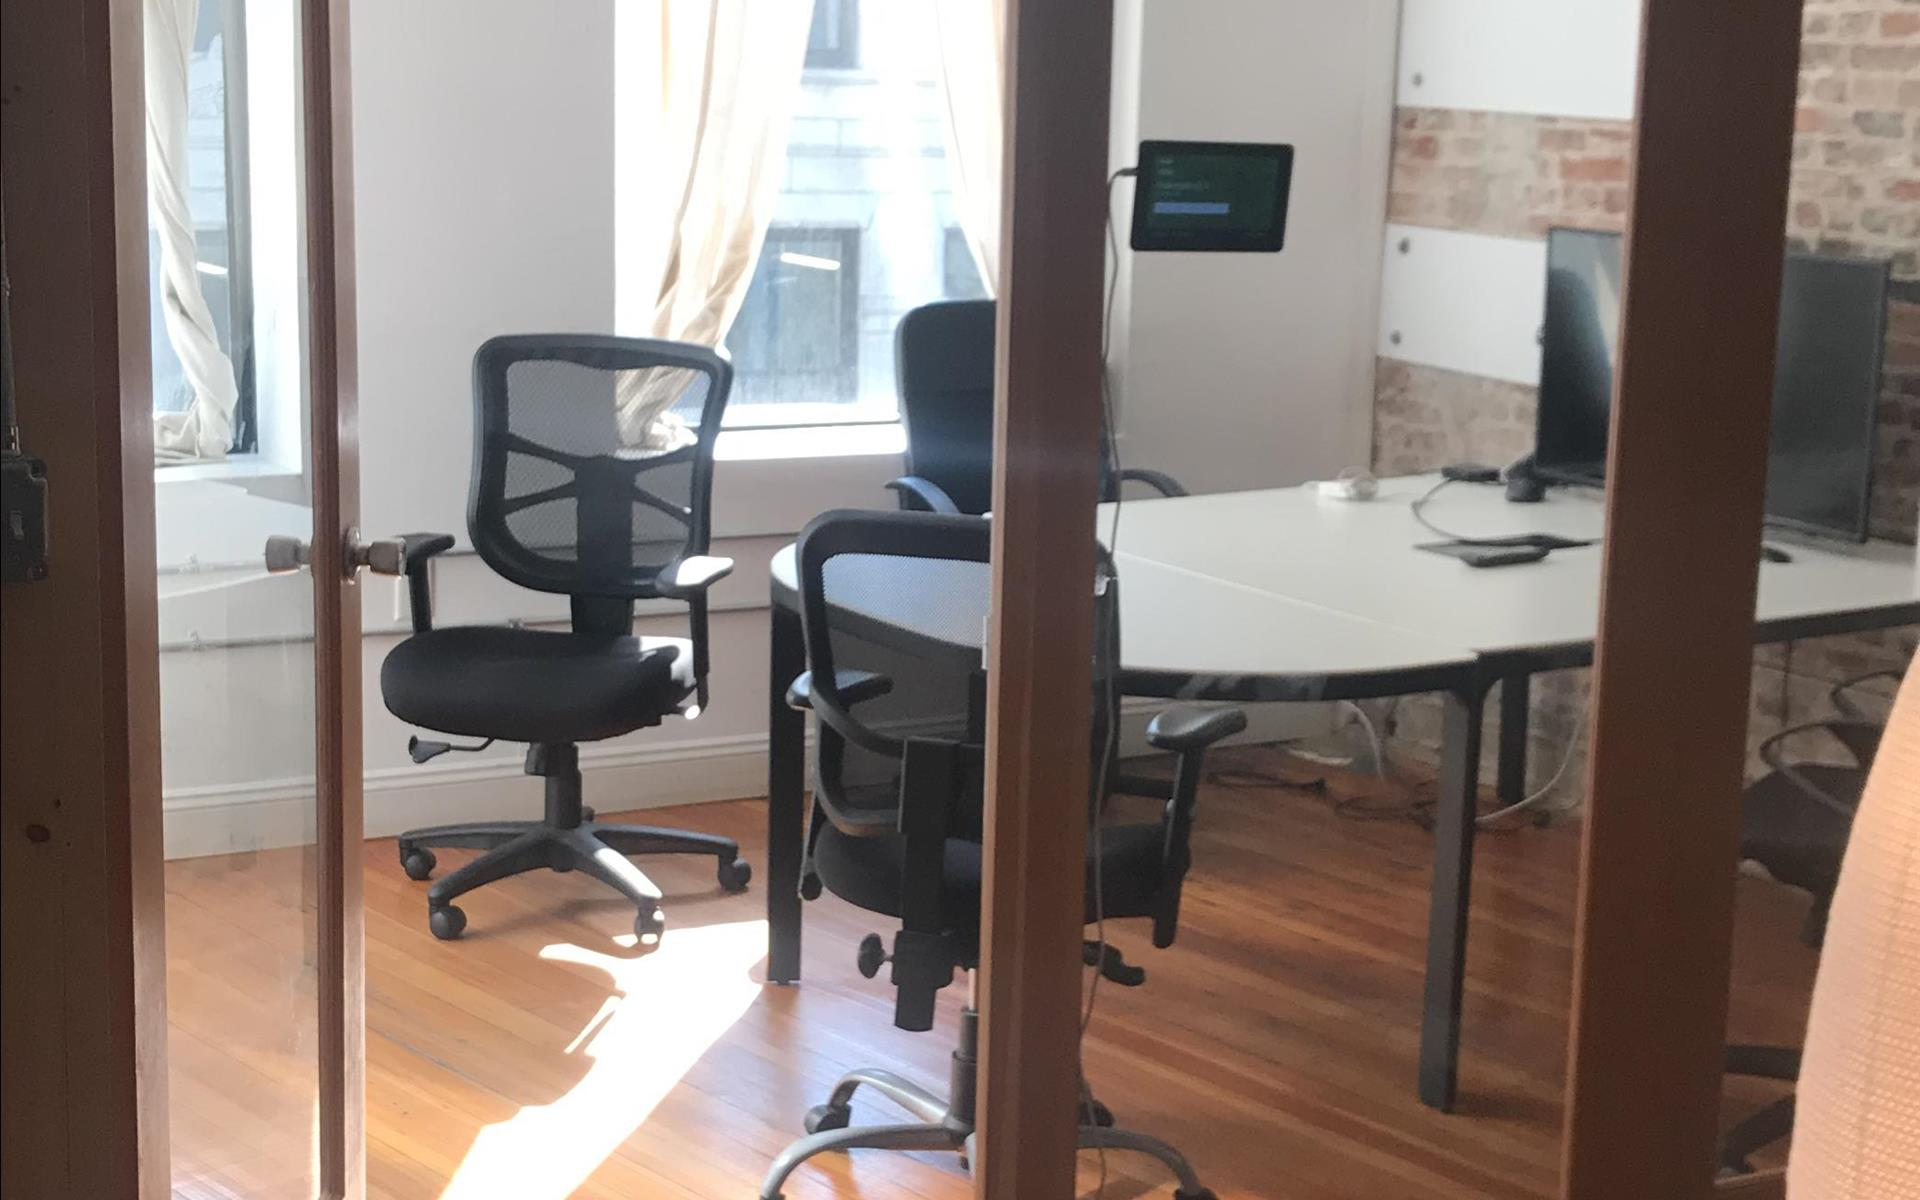 Ready4 - DowntownCrossing, 10 Ppl, Flexible price